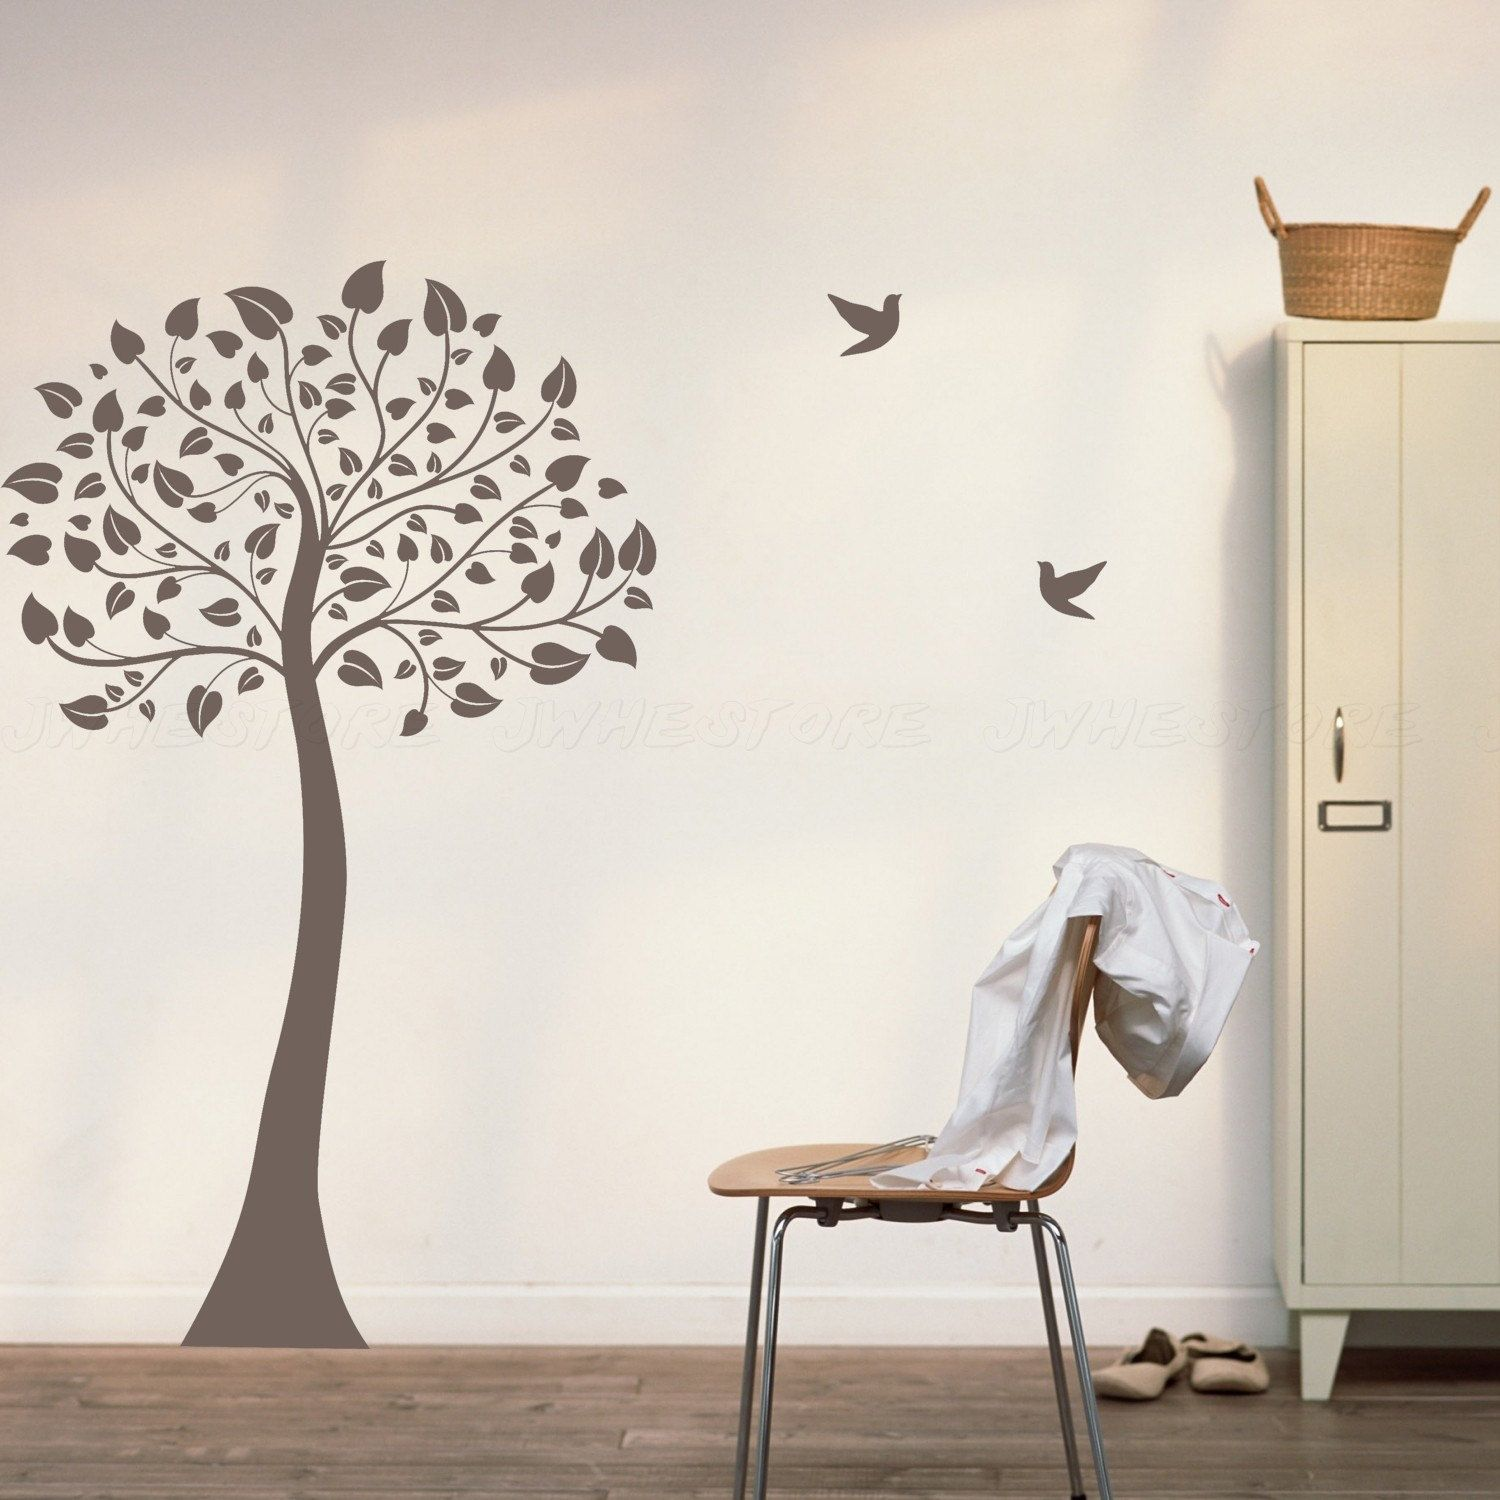 Wall decor we can do this too pinterest wall decor walls